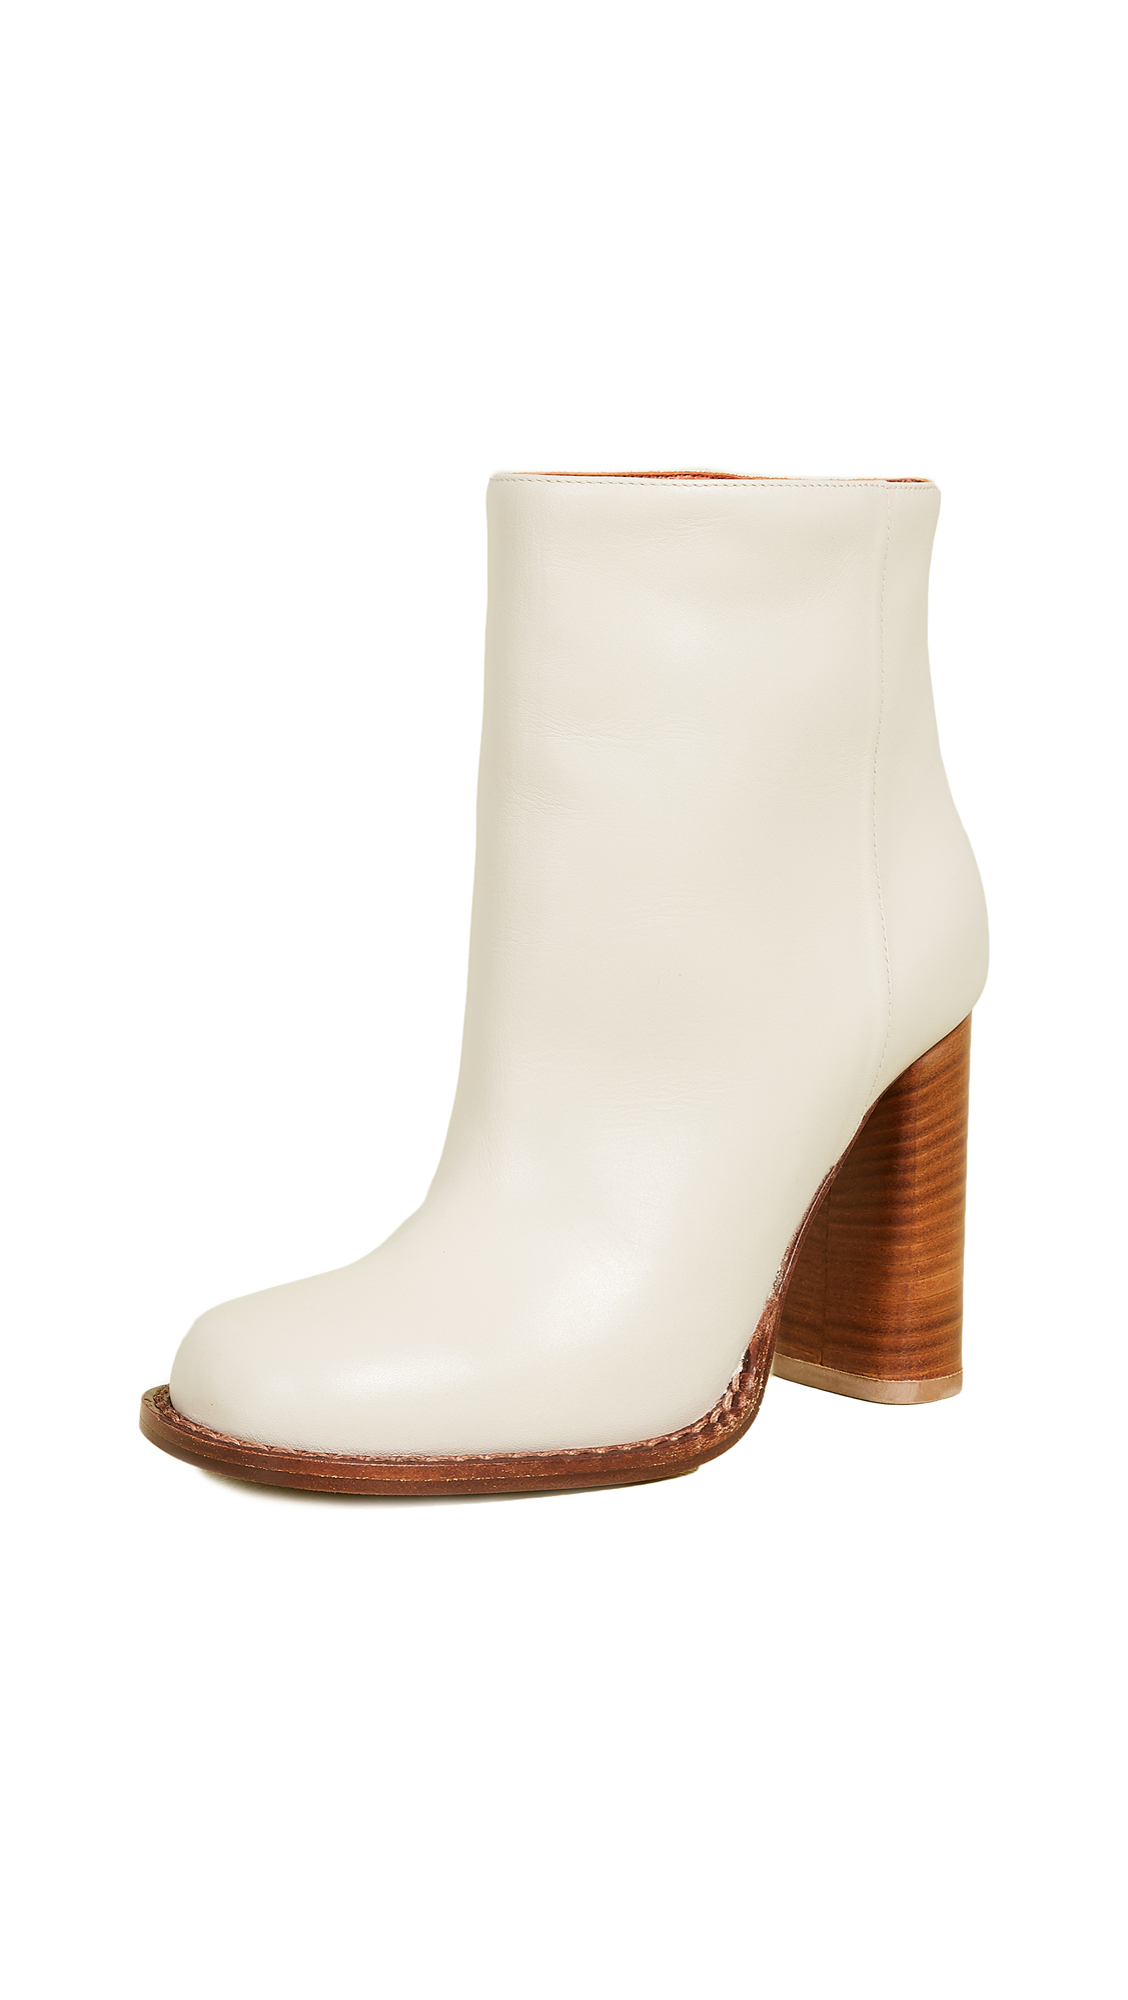 MARNI Leather Ankle Boots in Neutrals